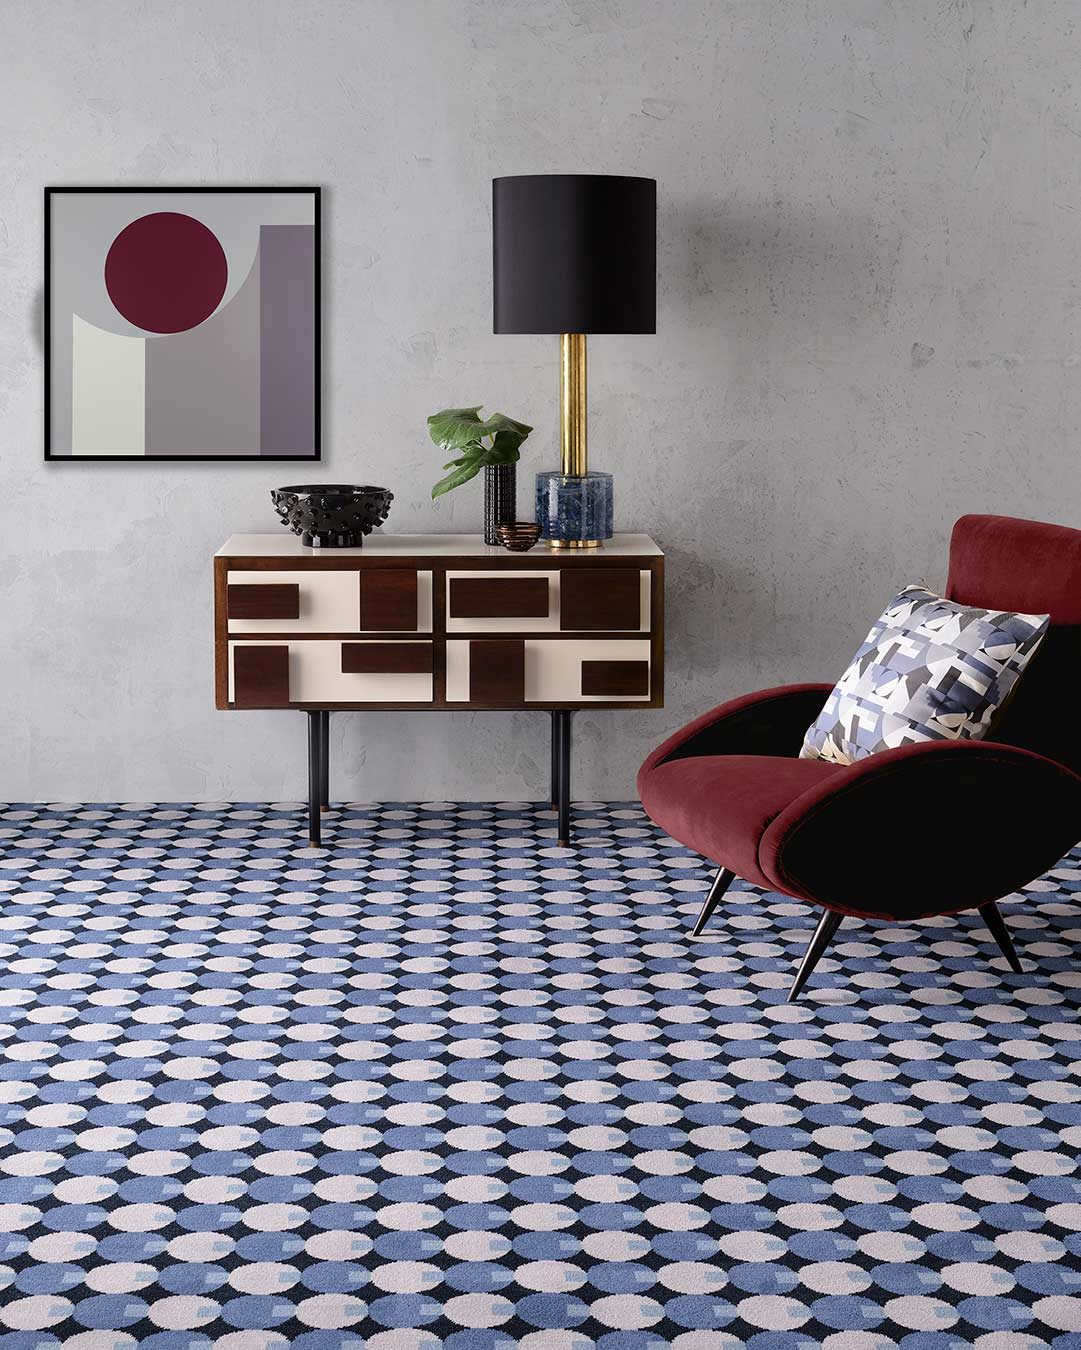 Living room view of Lapis blue geometric Axminster carpet by Greg Natale